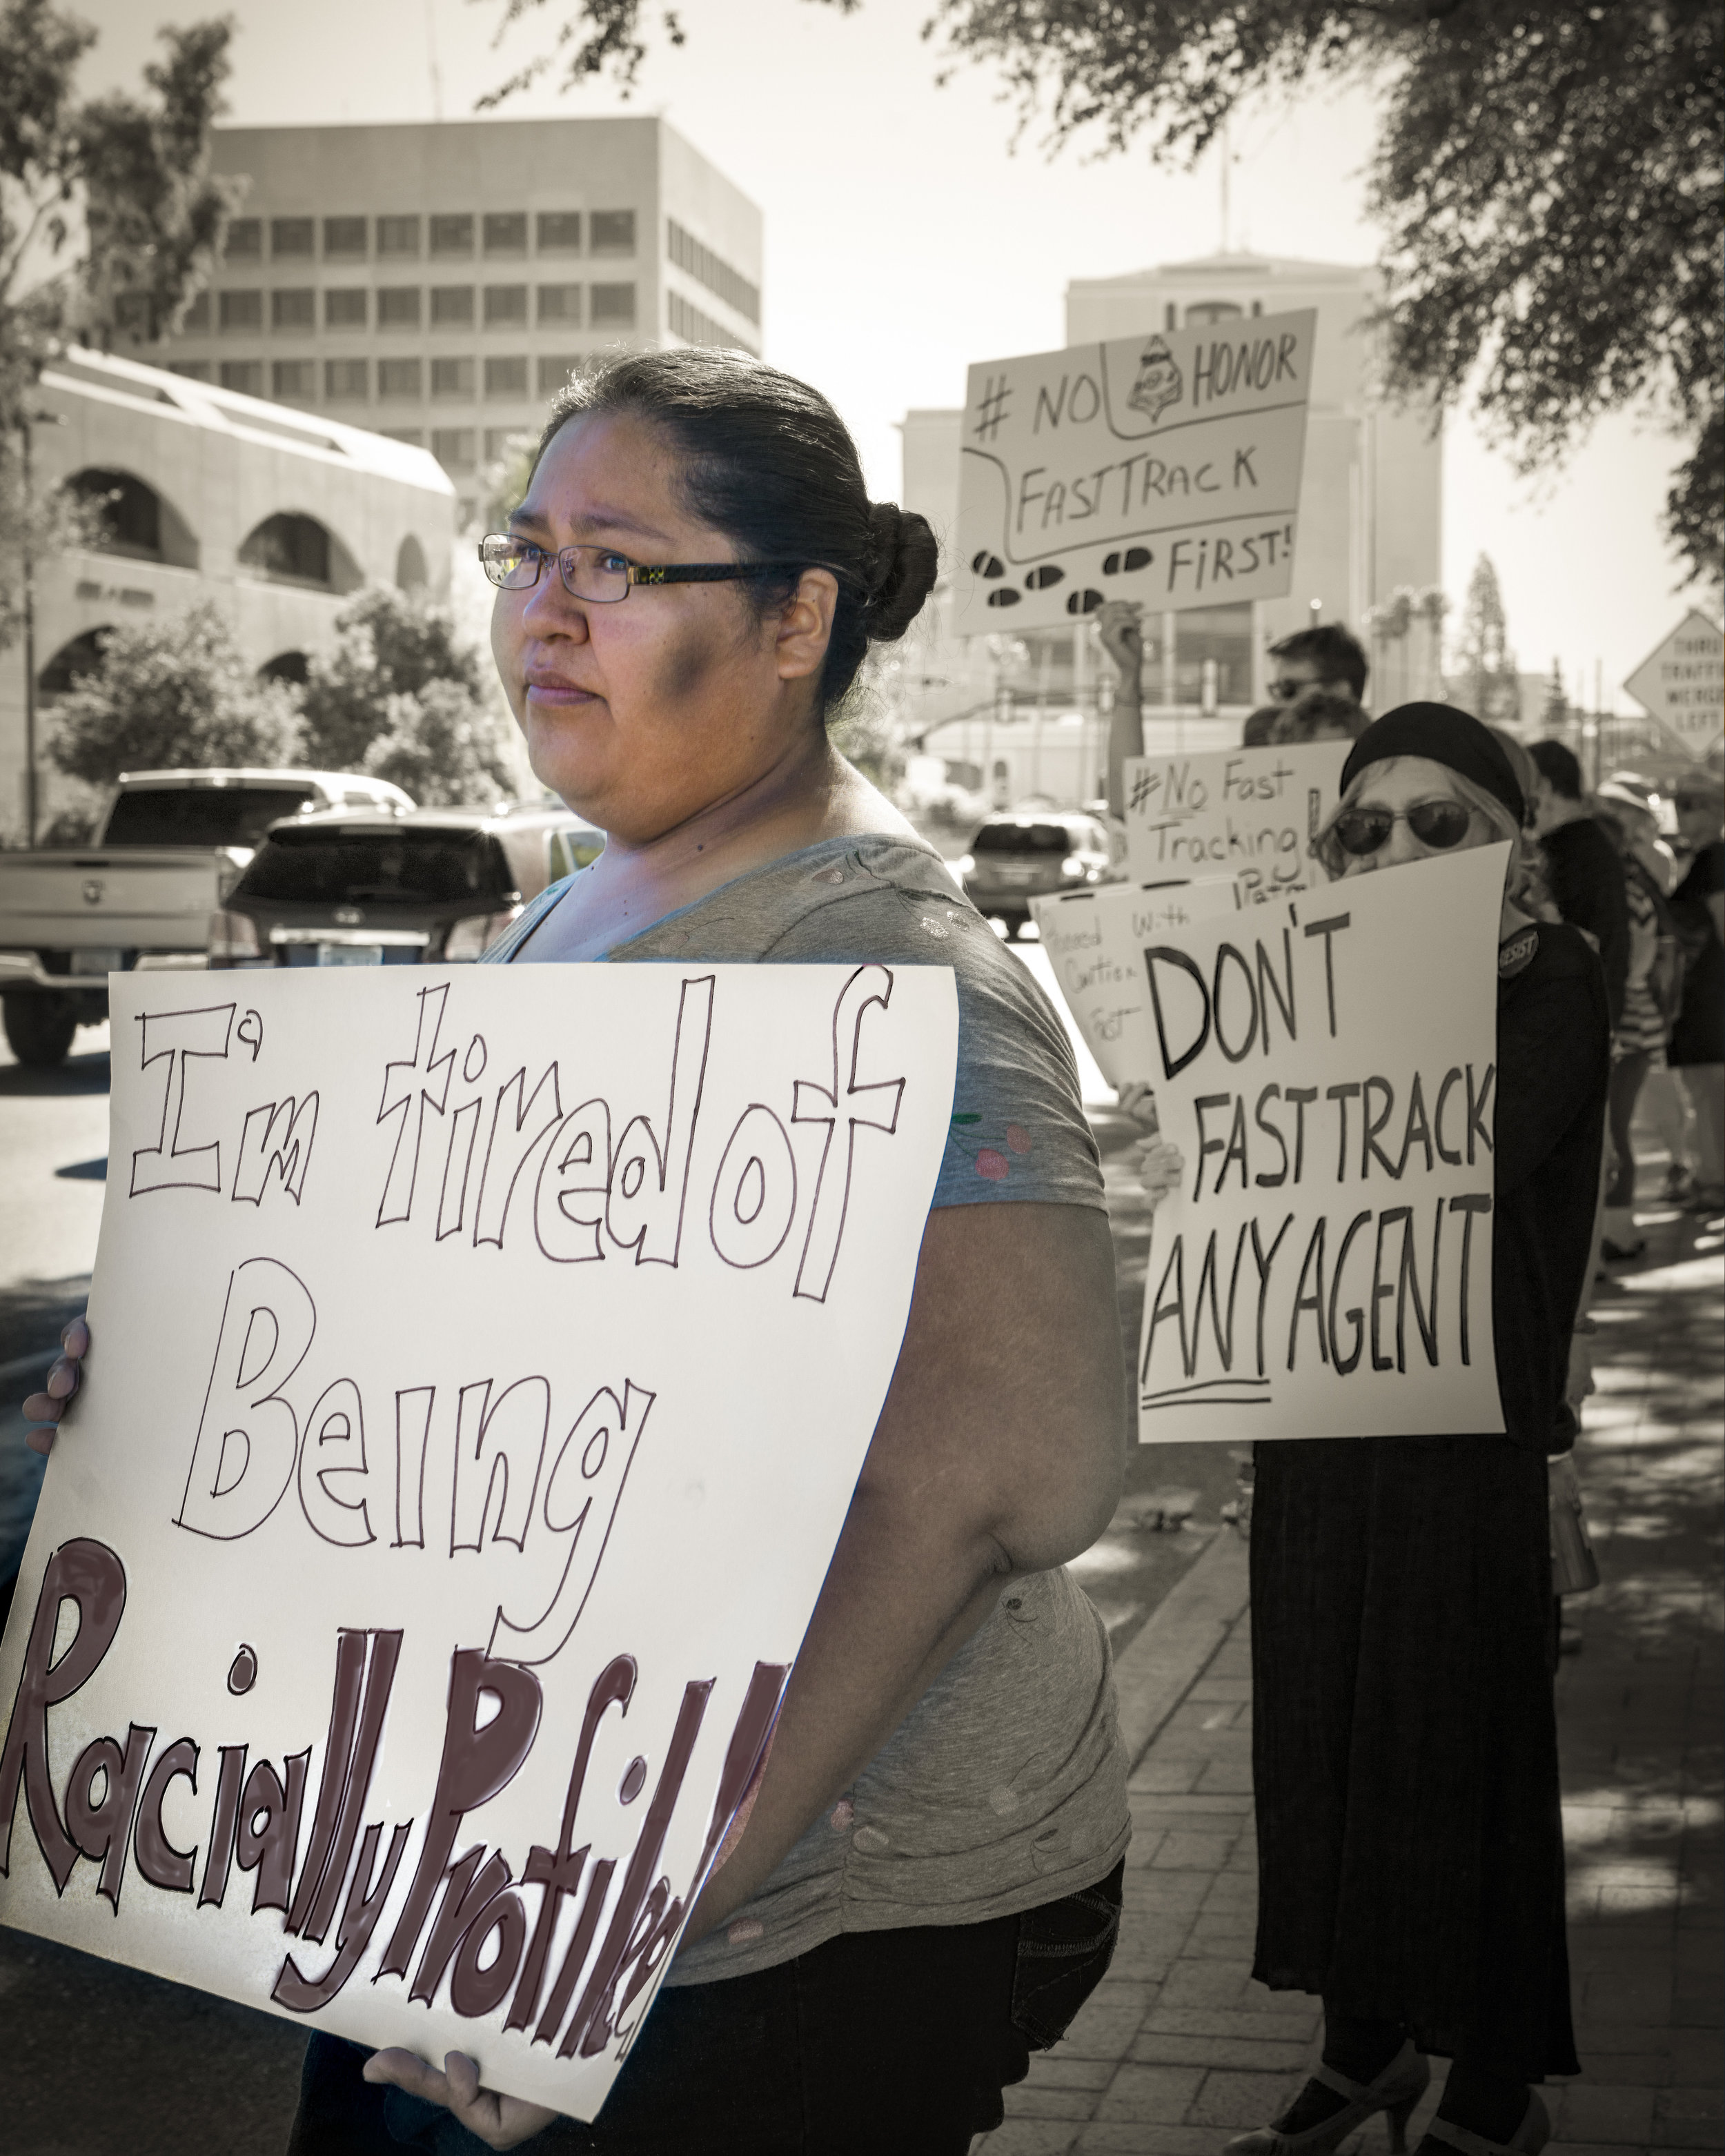 """May 23, 2017 Tucson, AZ: Gabriella Cazares-Kelly, a member of the Tohono O'odham Nation, is an educator and community organizer. She writes: """"In my community, Border Patrol agents have been known to question without cause, verbally harass, drive recklessly, damage property, intimidate and physically assault tribal members. Our community is already militarized.""""  Title: Tired  Medium: Digital Print on Aluminum with frame  Size: 16 x 20  Year of creation: 2017  Price $350  For sales inquiries, please contact dlutzick@yahoo.com with Winslow Arts Trust Museum"""